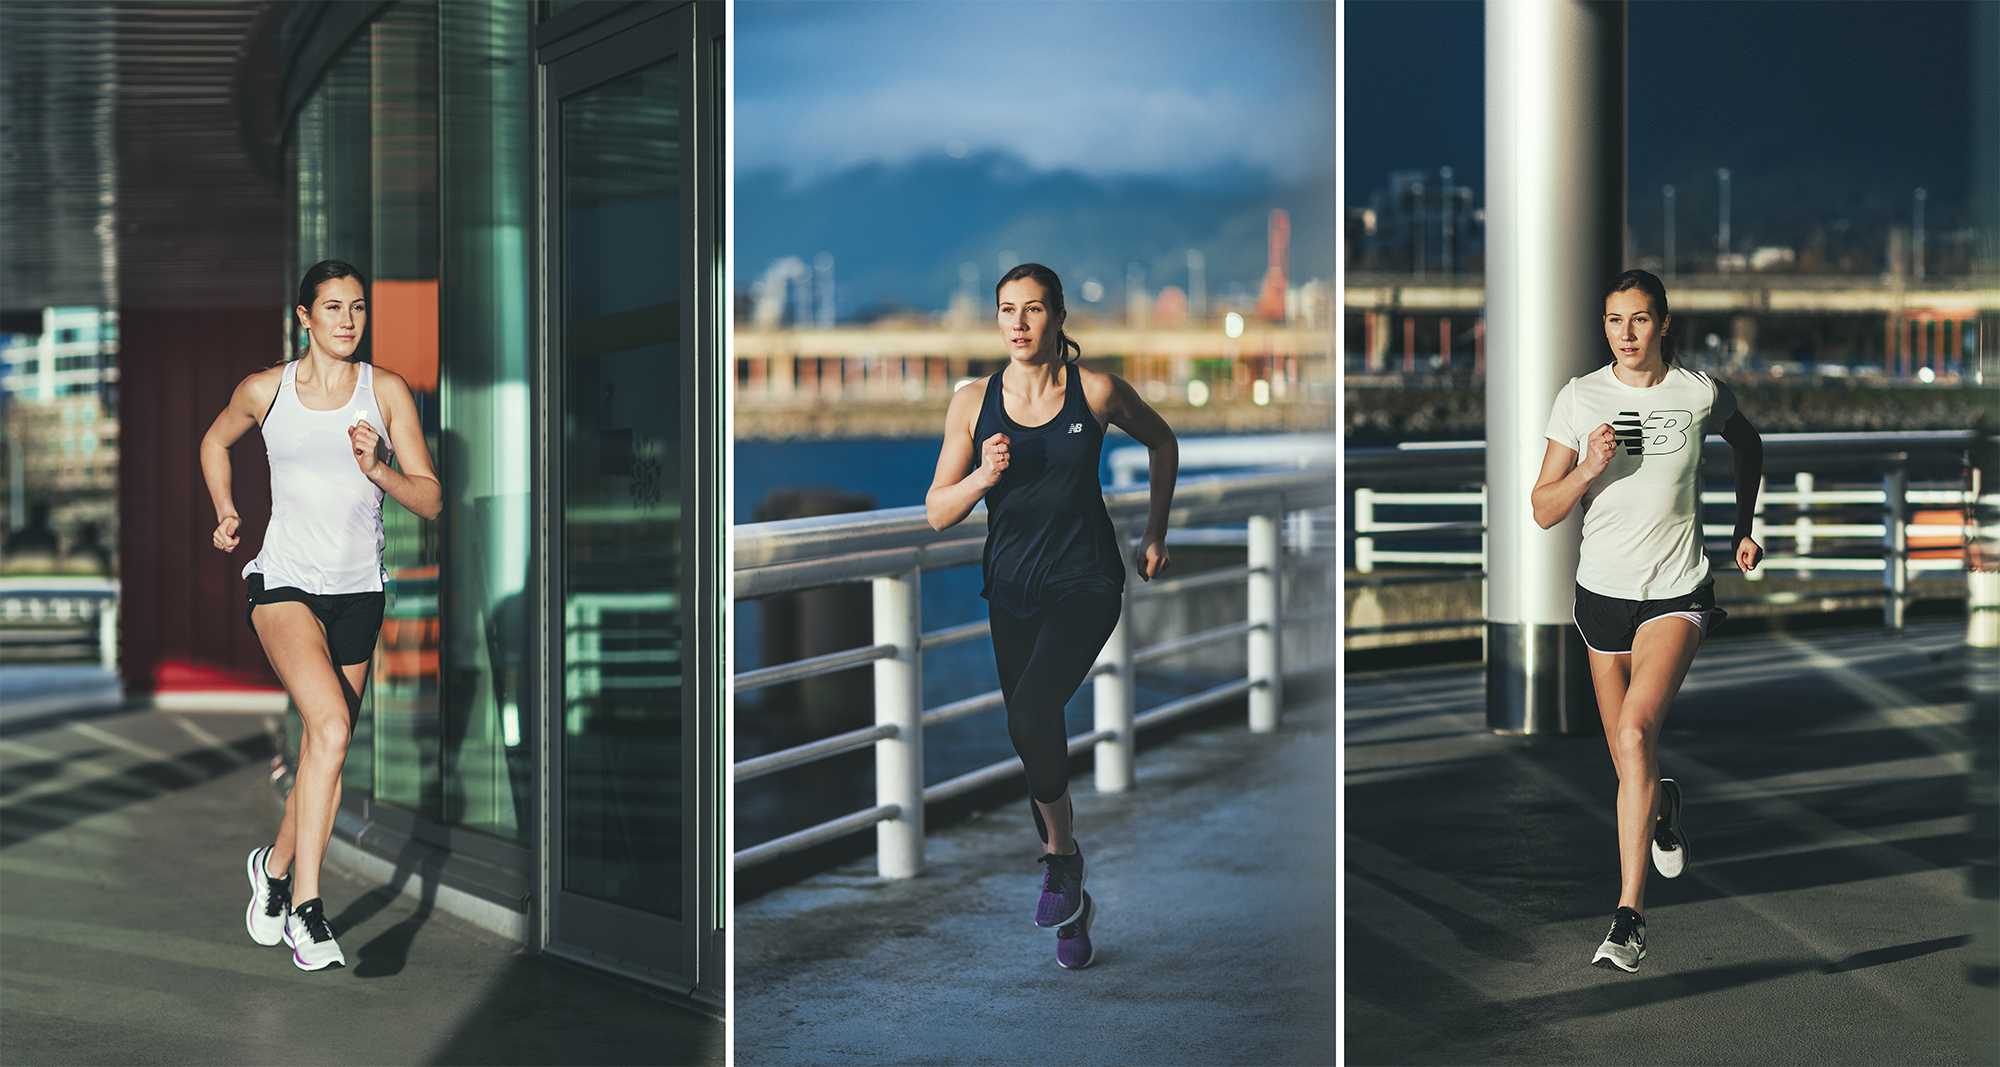 Lindsey Butterworth for New Balance-by-brice-ferre-vancouver-adventure-portrait-athlete-photographer